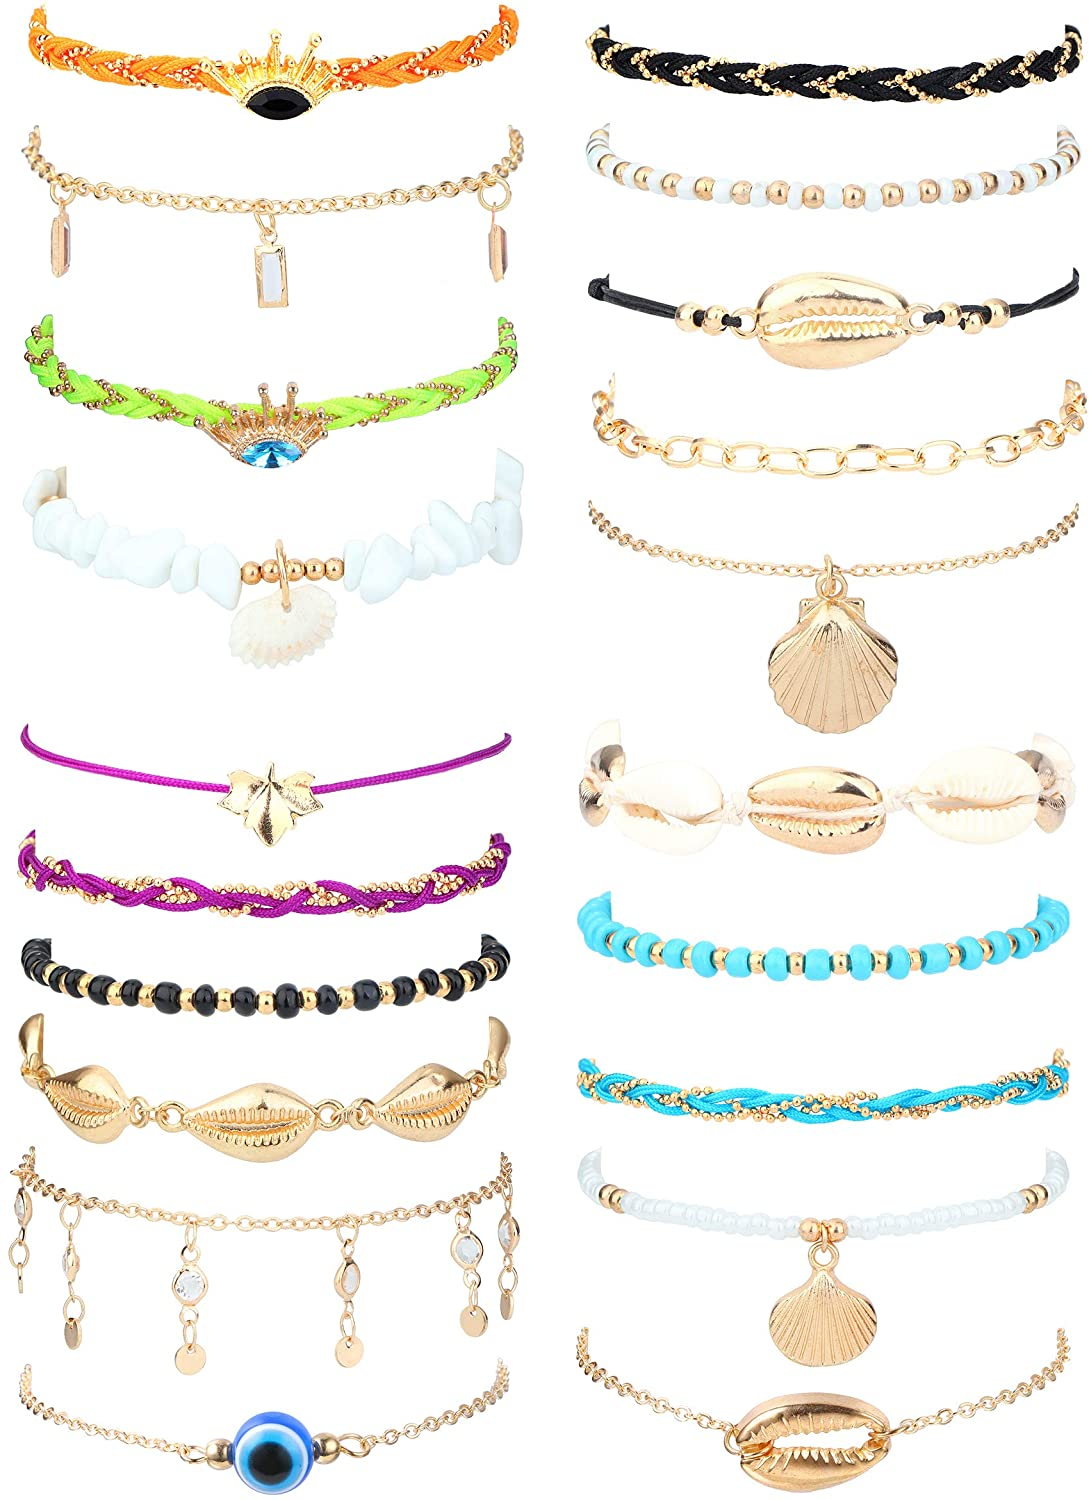 Florideco 20Pcs Layered Anklets for Women Woven Rope Shell Ankle Bracelets Set Bohemia Beach Chain Anklet Foot Jewelry Adjustable Size